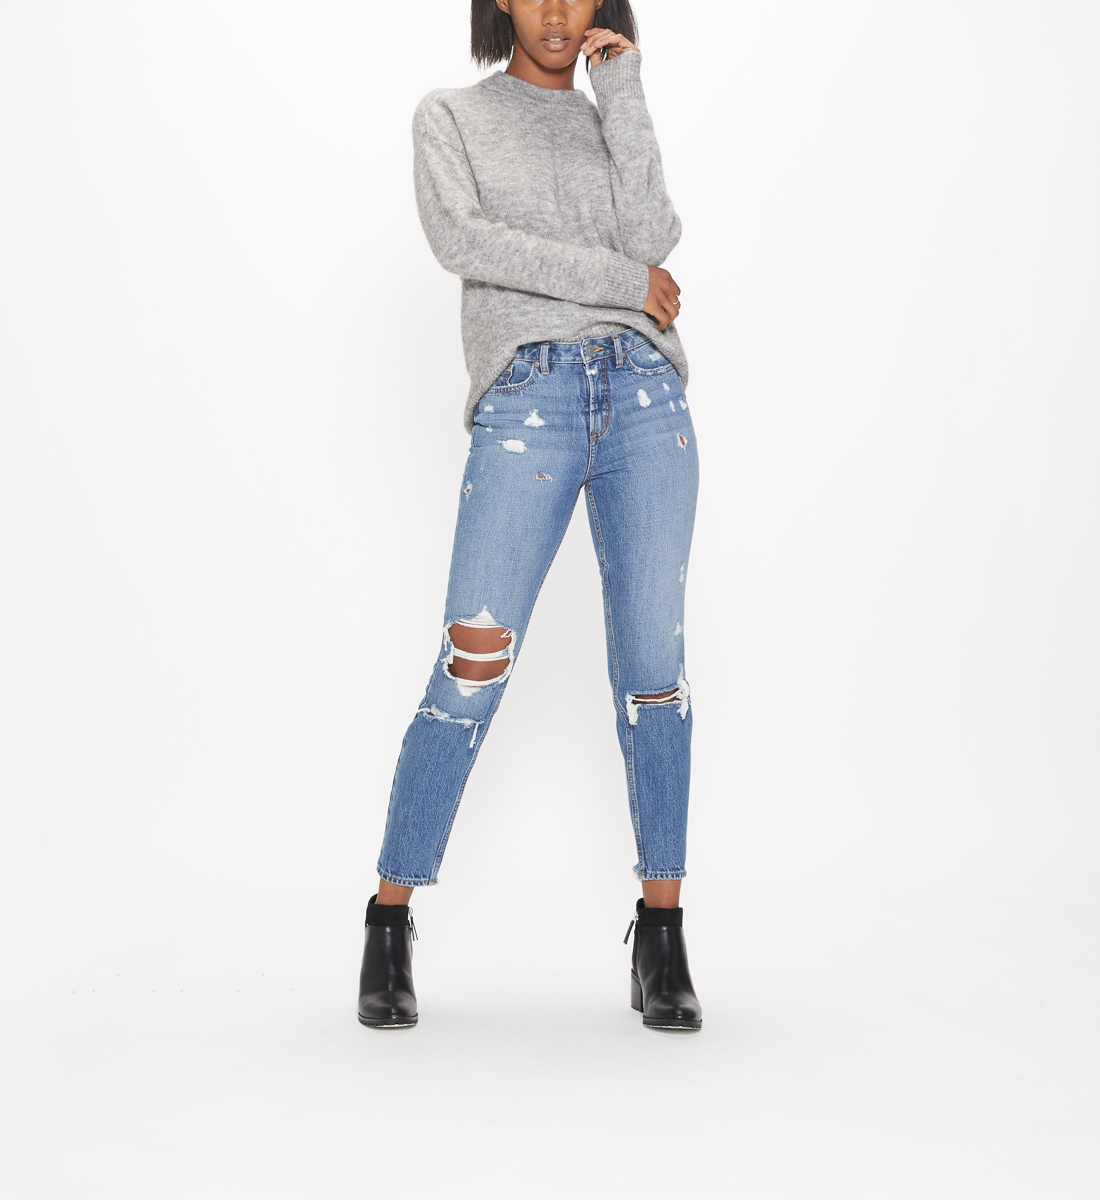 East End High Rise Ankle Slim Jeans, , hi-res